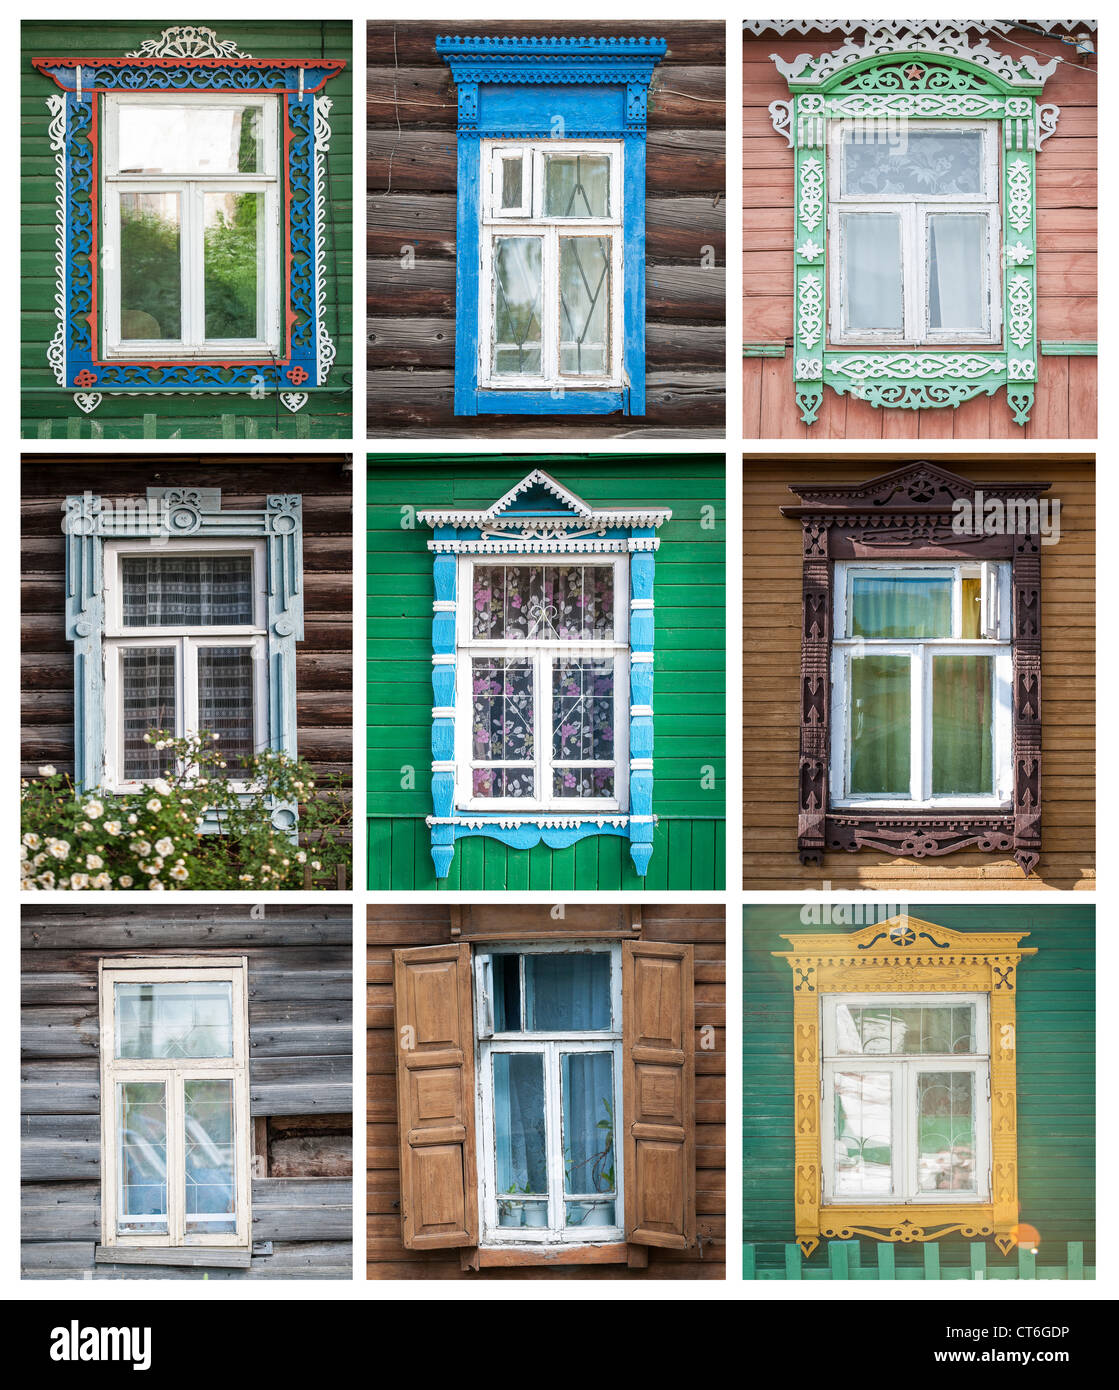 Collage made of different windows of traditional russian